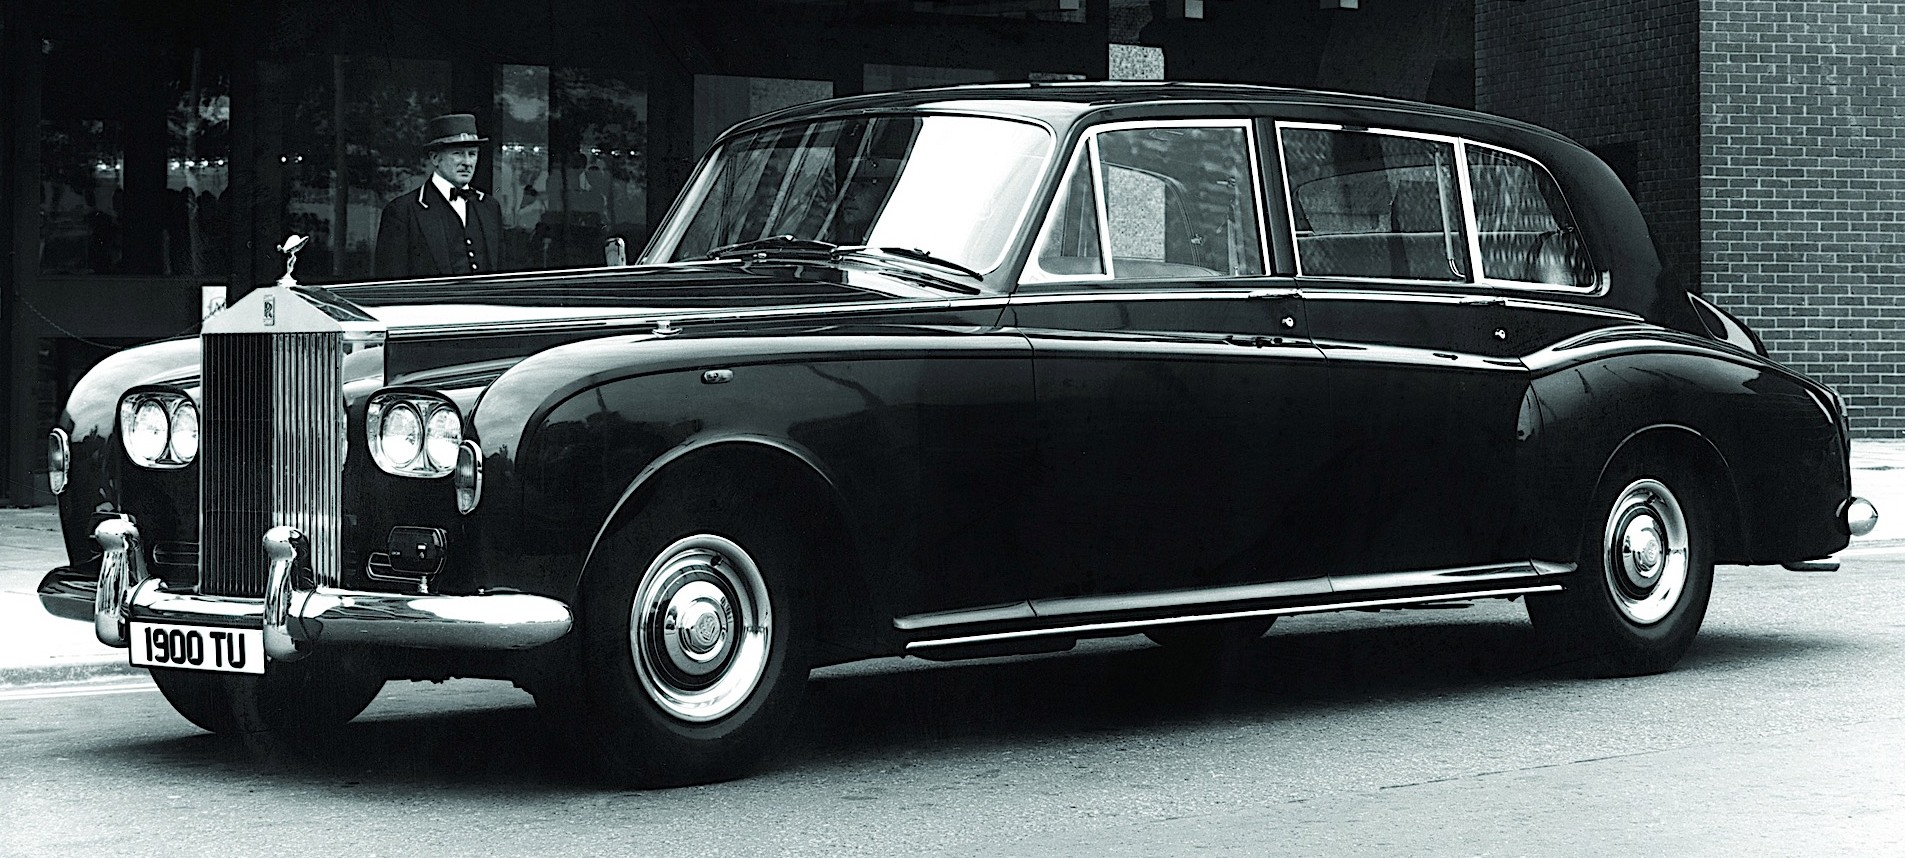 The Astonishing History of the Rolls-Royce Phantom - autoevolution